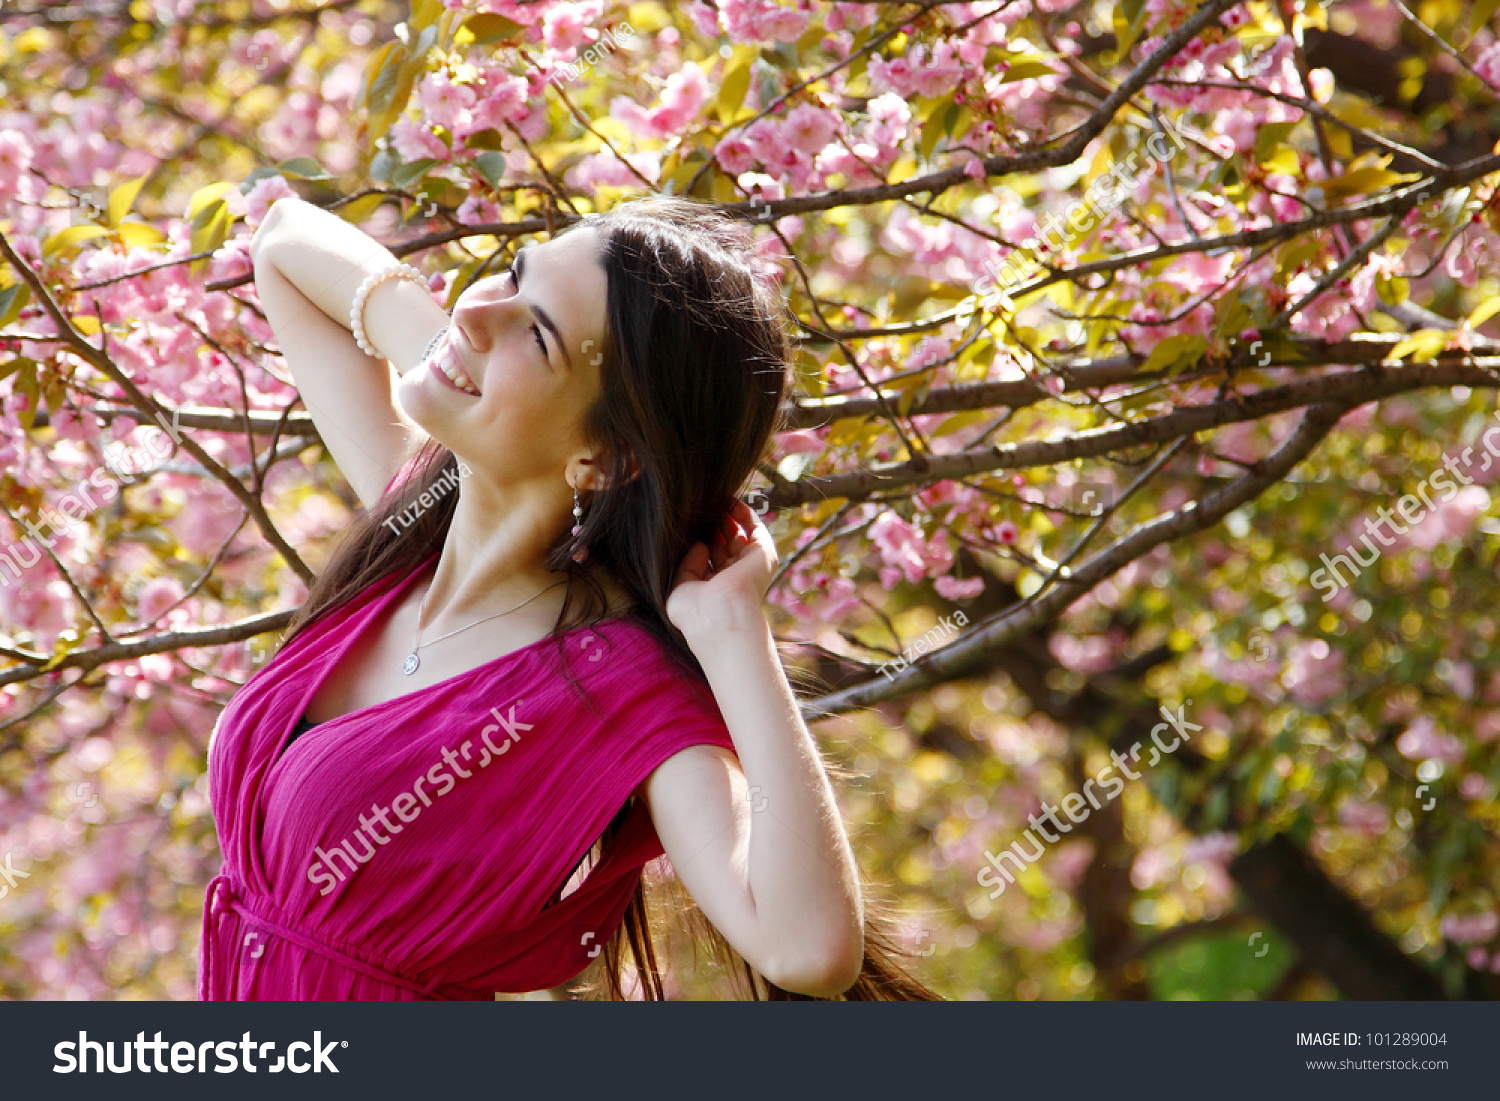 spring garden asian girl personals Meet face to face with japanese people in their true culture for dating, becoming friends or learning japanese language  i met 2 girls as a friend.